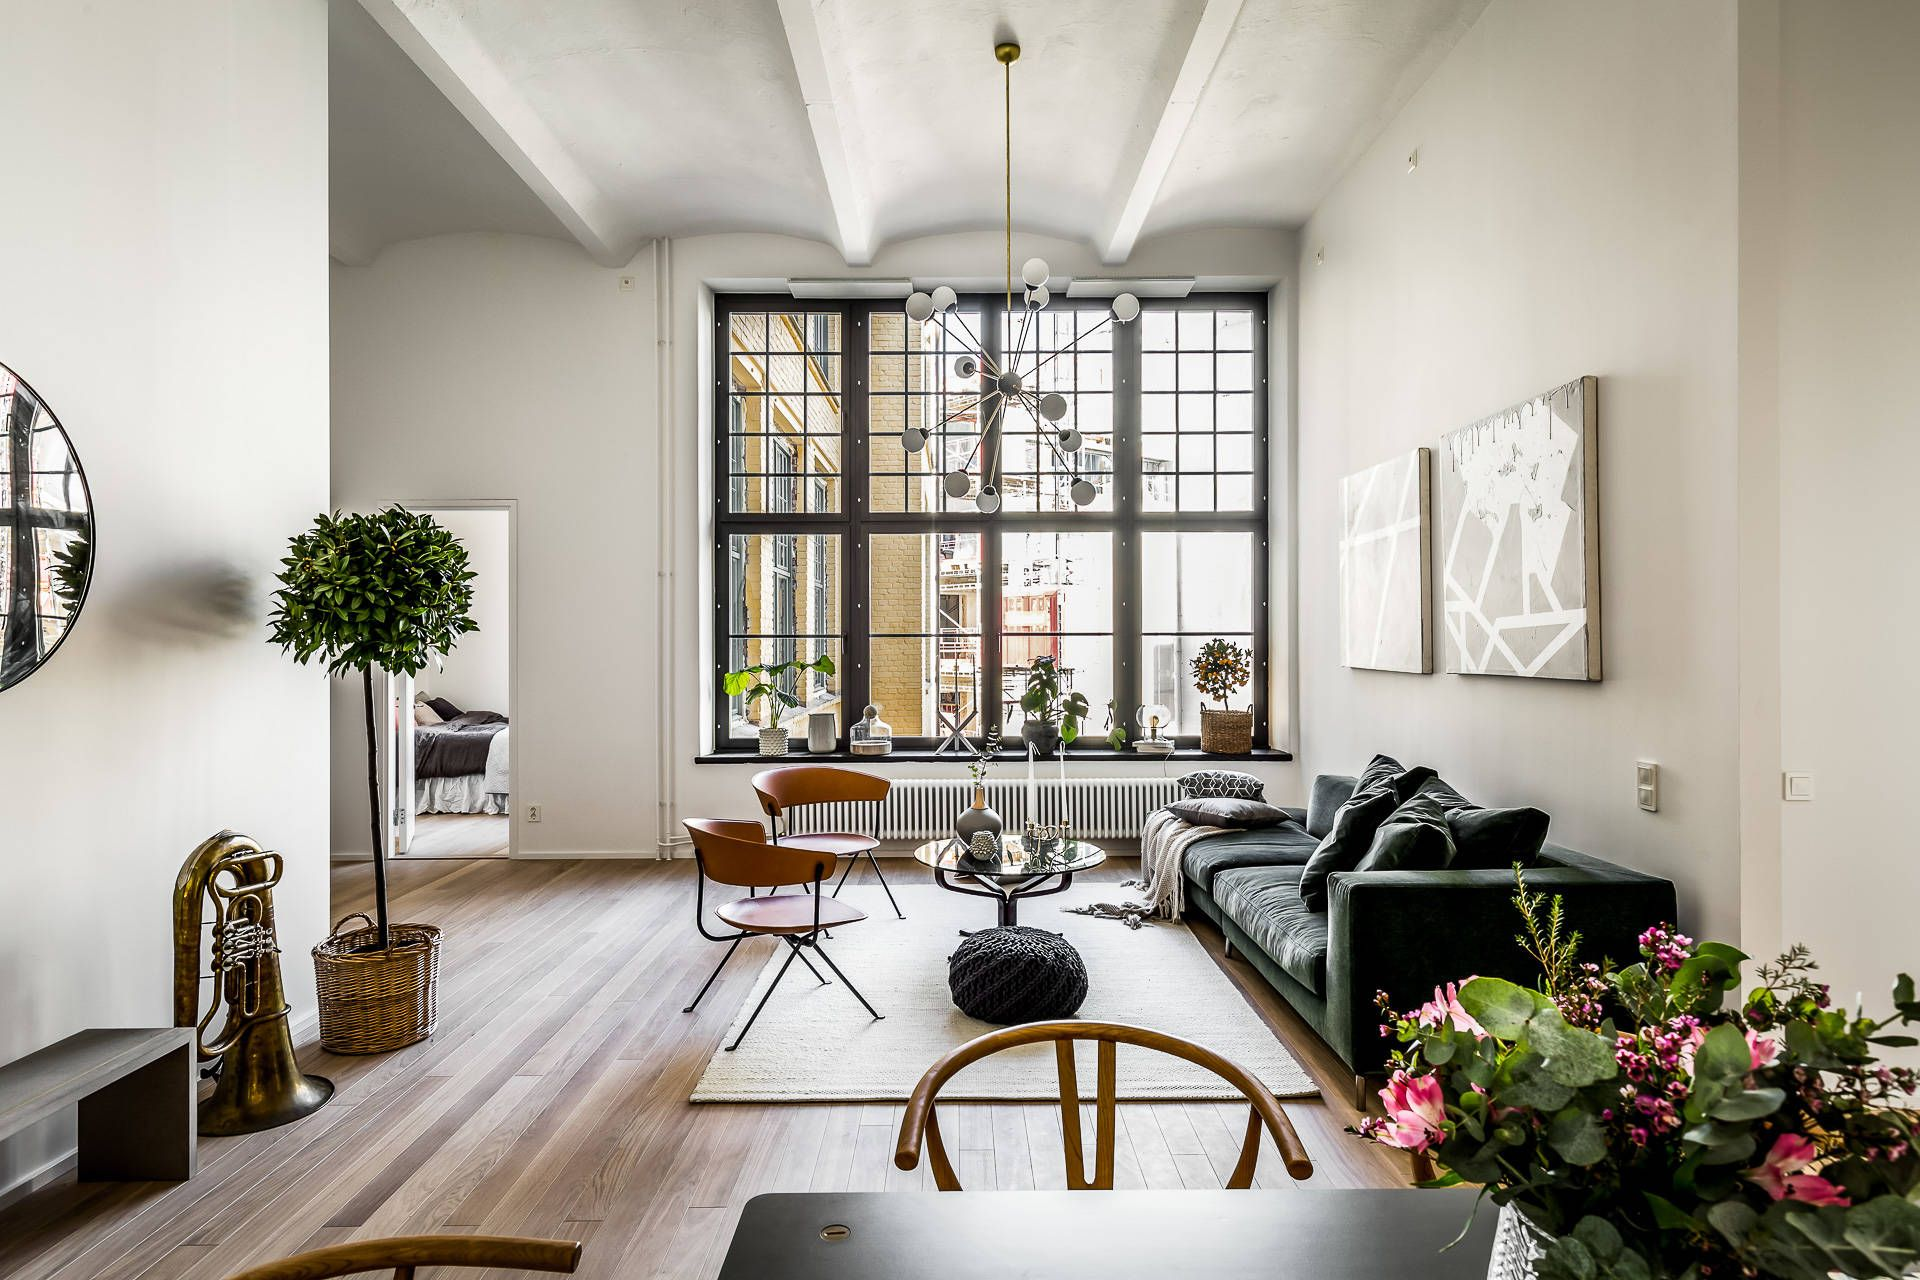 Super high ceilings and oversized black framed